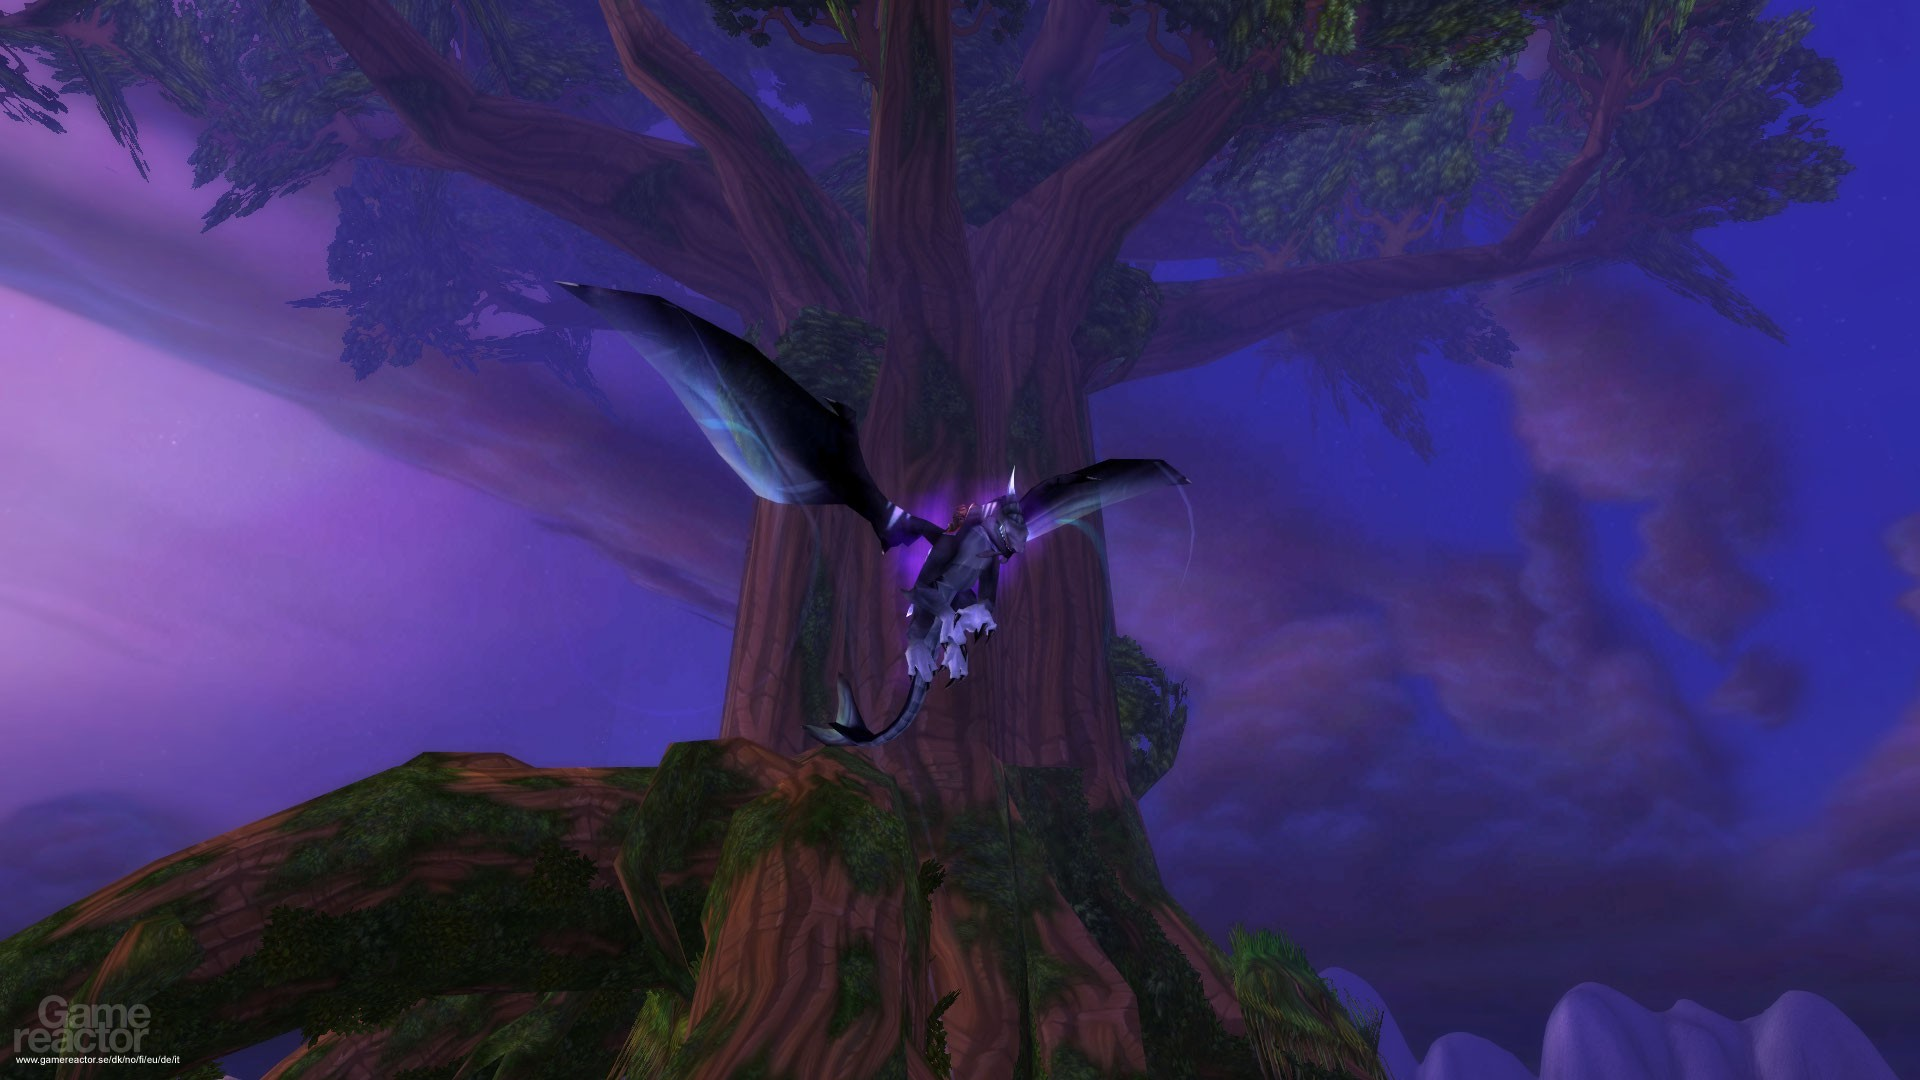 World of warcraft gnome quest help sexual scene